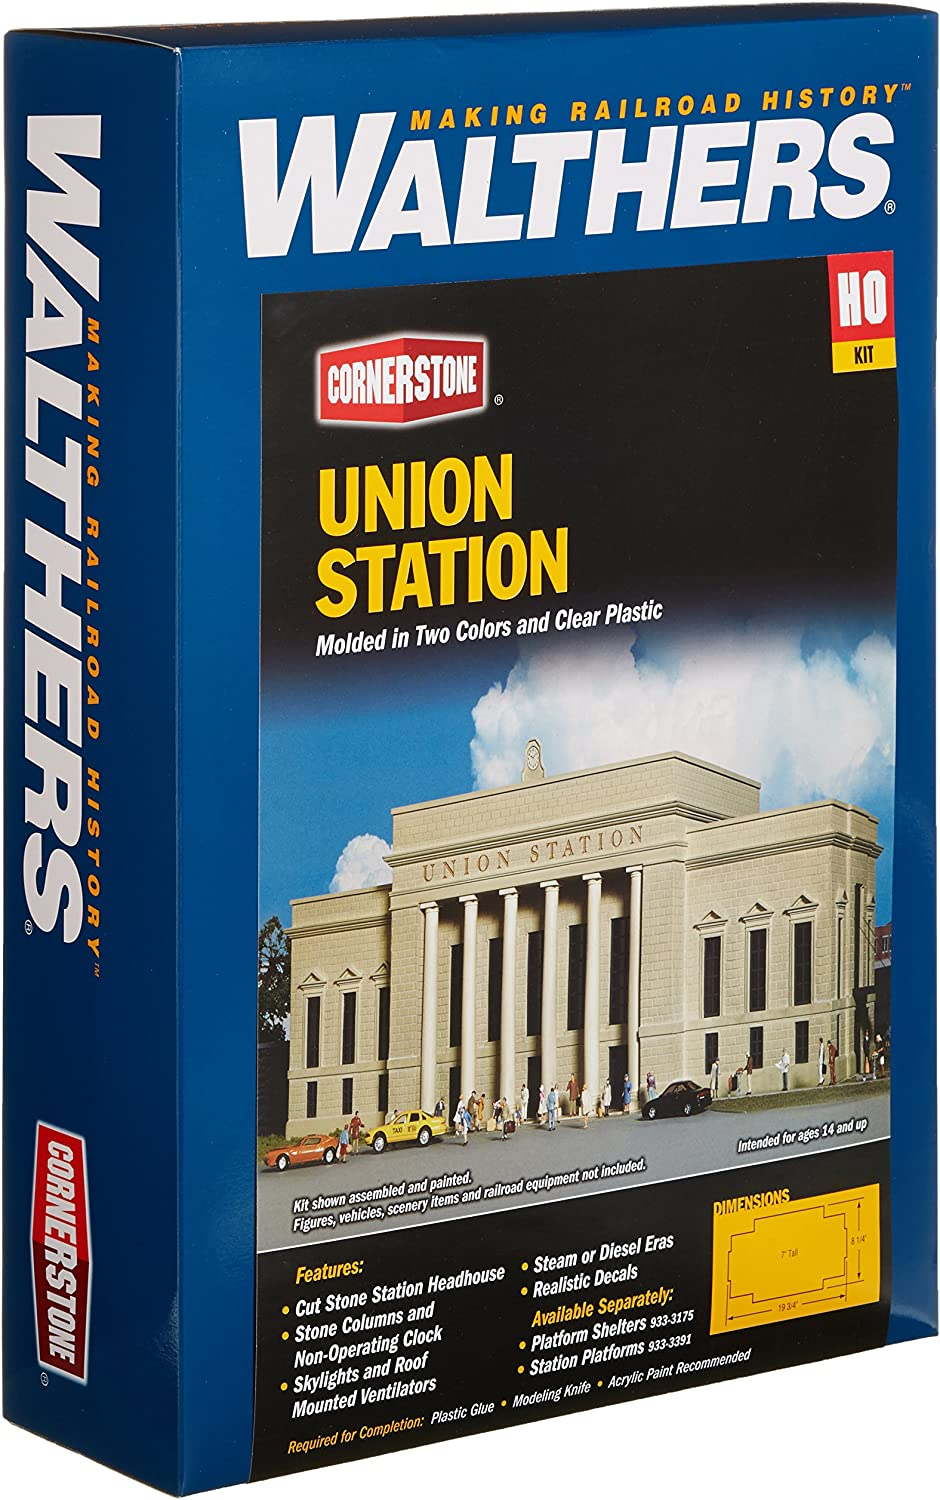 Walthers Cornerstone Series Kit HO Scale Union Station